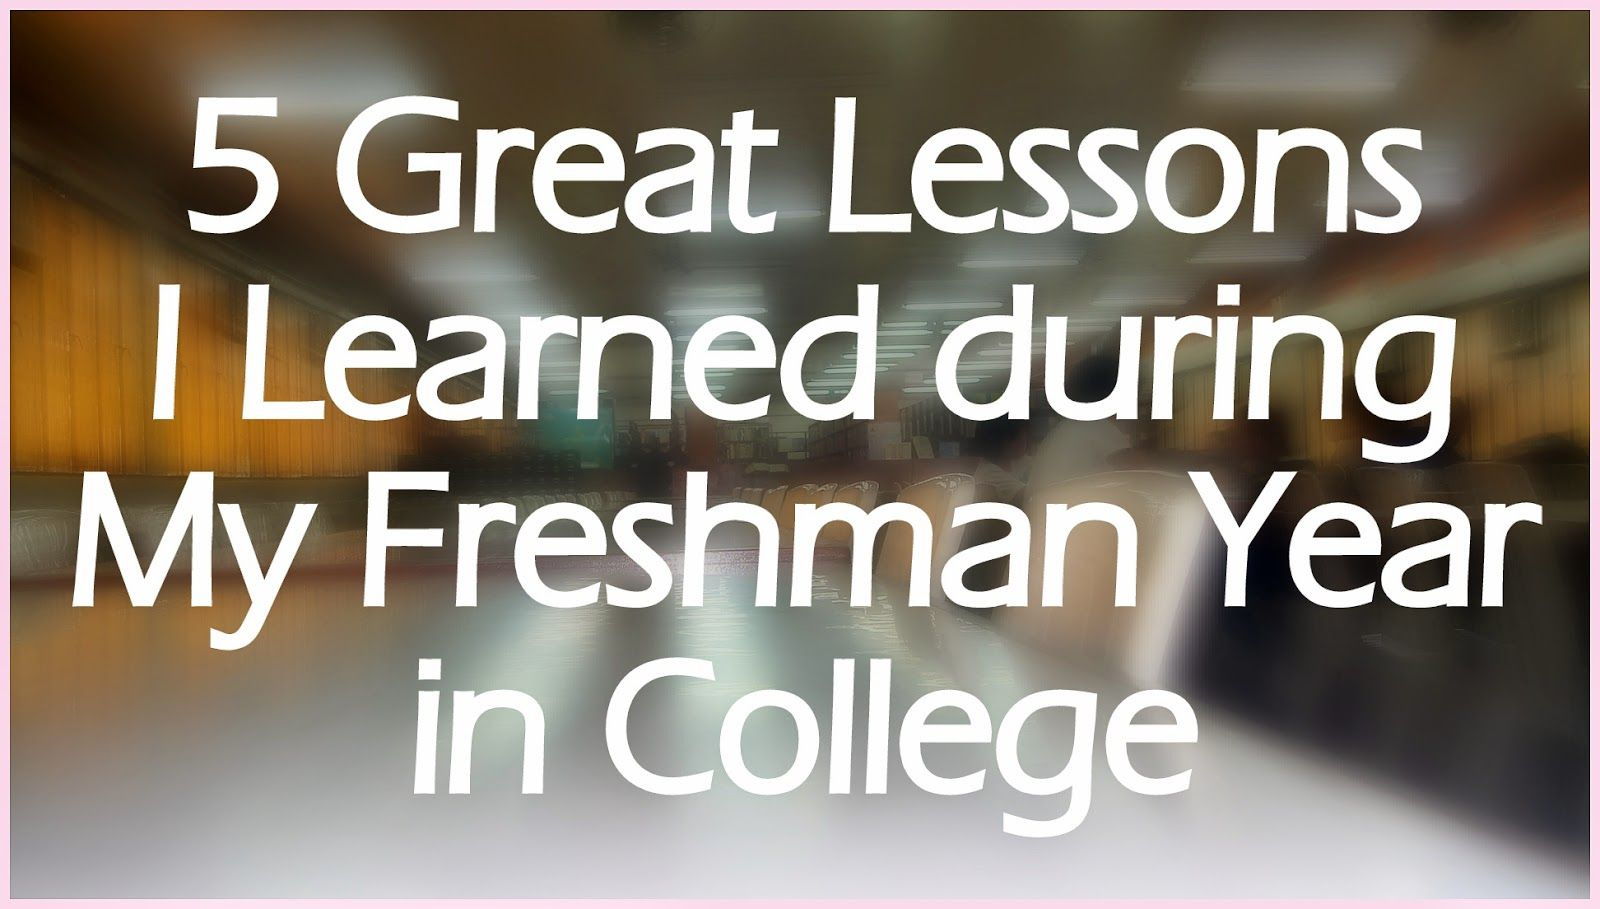 5 great lessons i learned during my freshman year in college 5 great lessons i learned during my freshman year in college gracefulmist